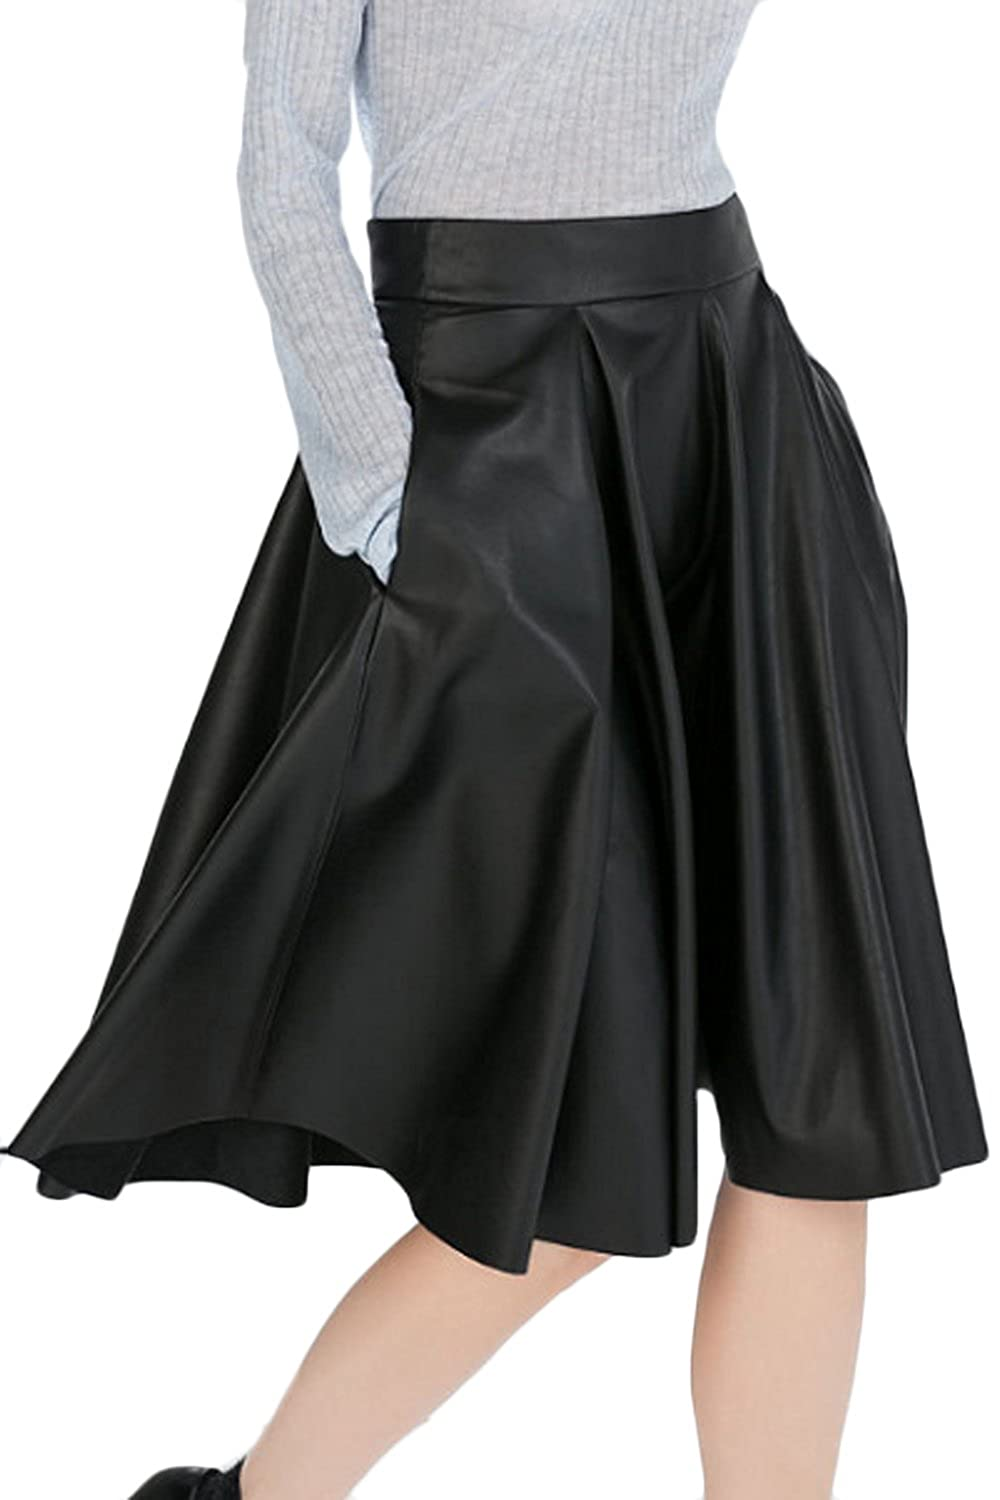 ACHICGIRL Classic Pu Leather Pleated High Waist Skirt